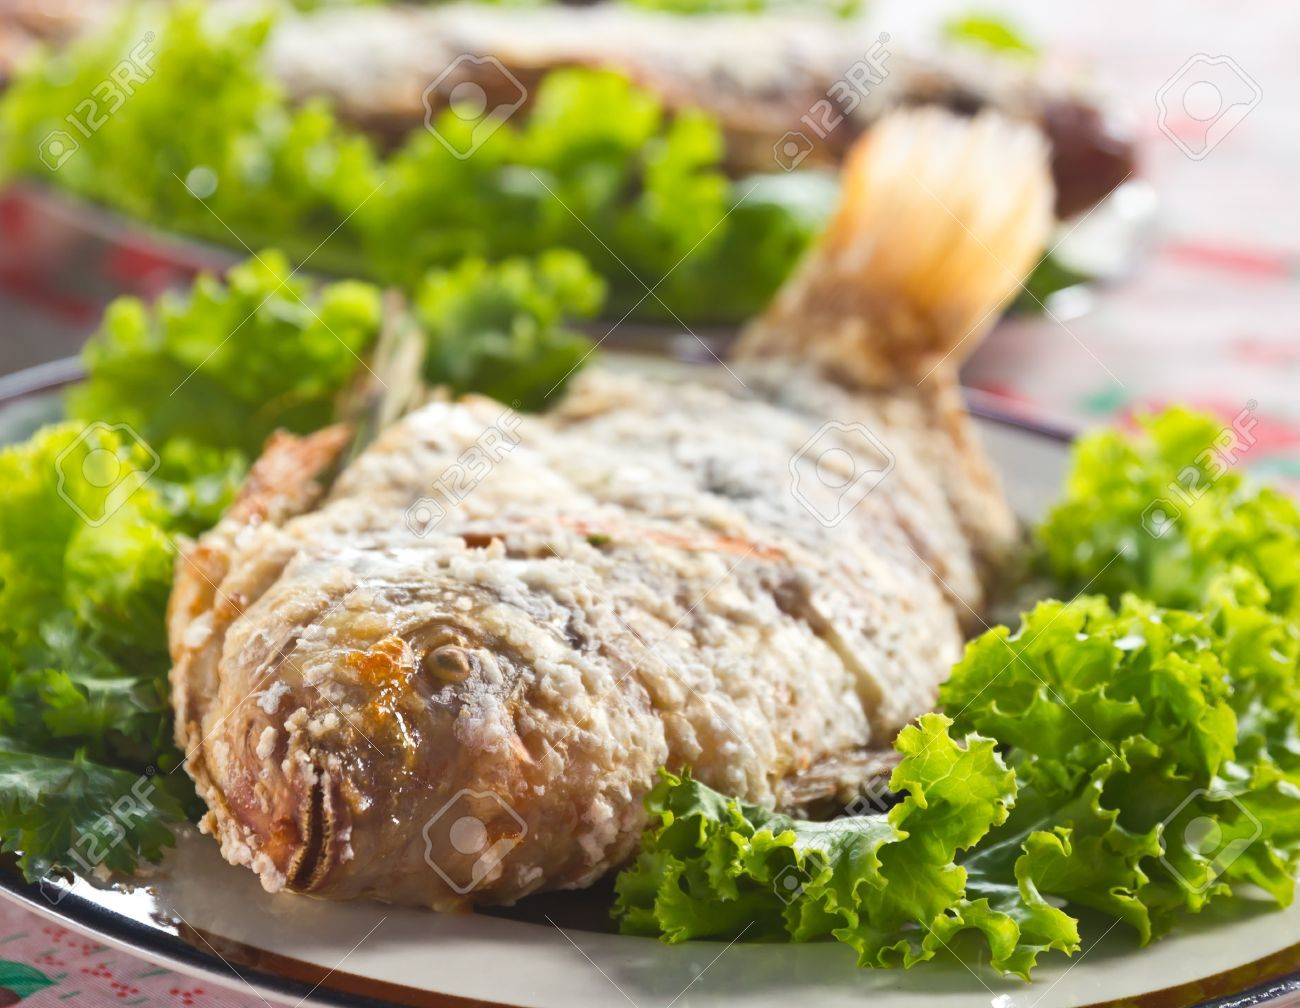 Fried fish and green fresh vegetables Stock Photo - 10175168